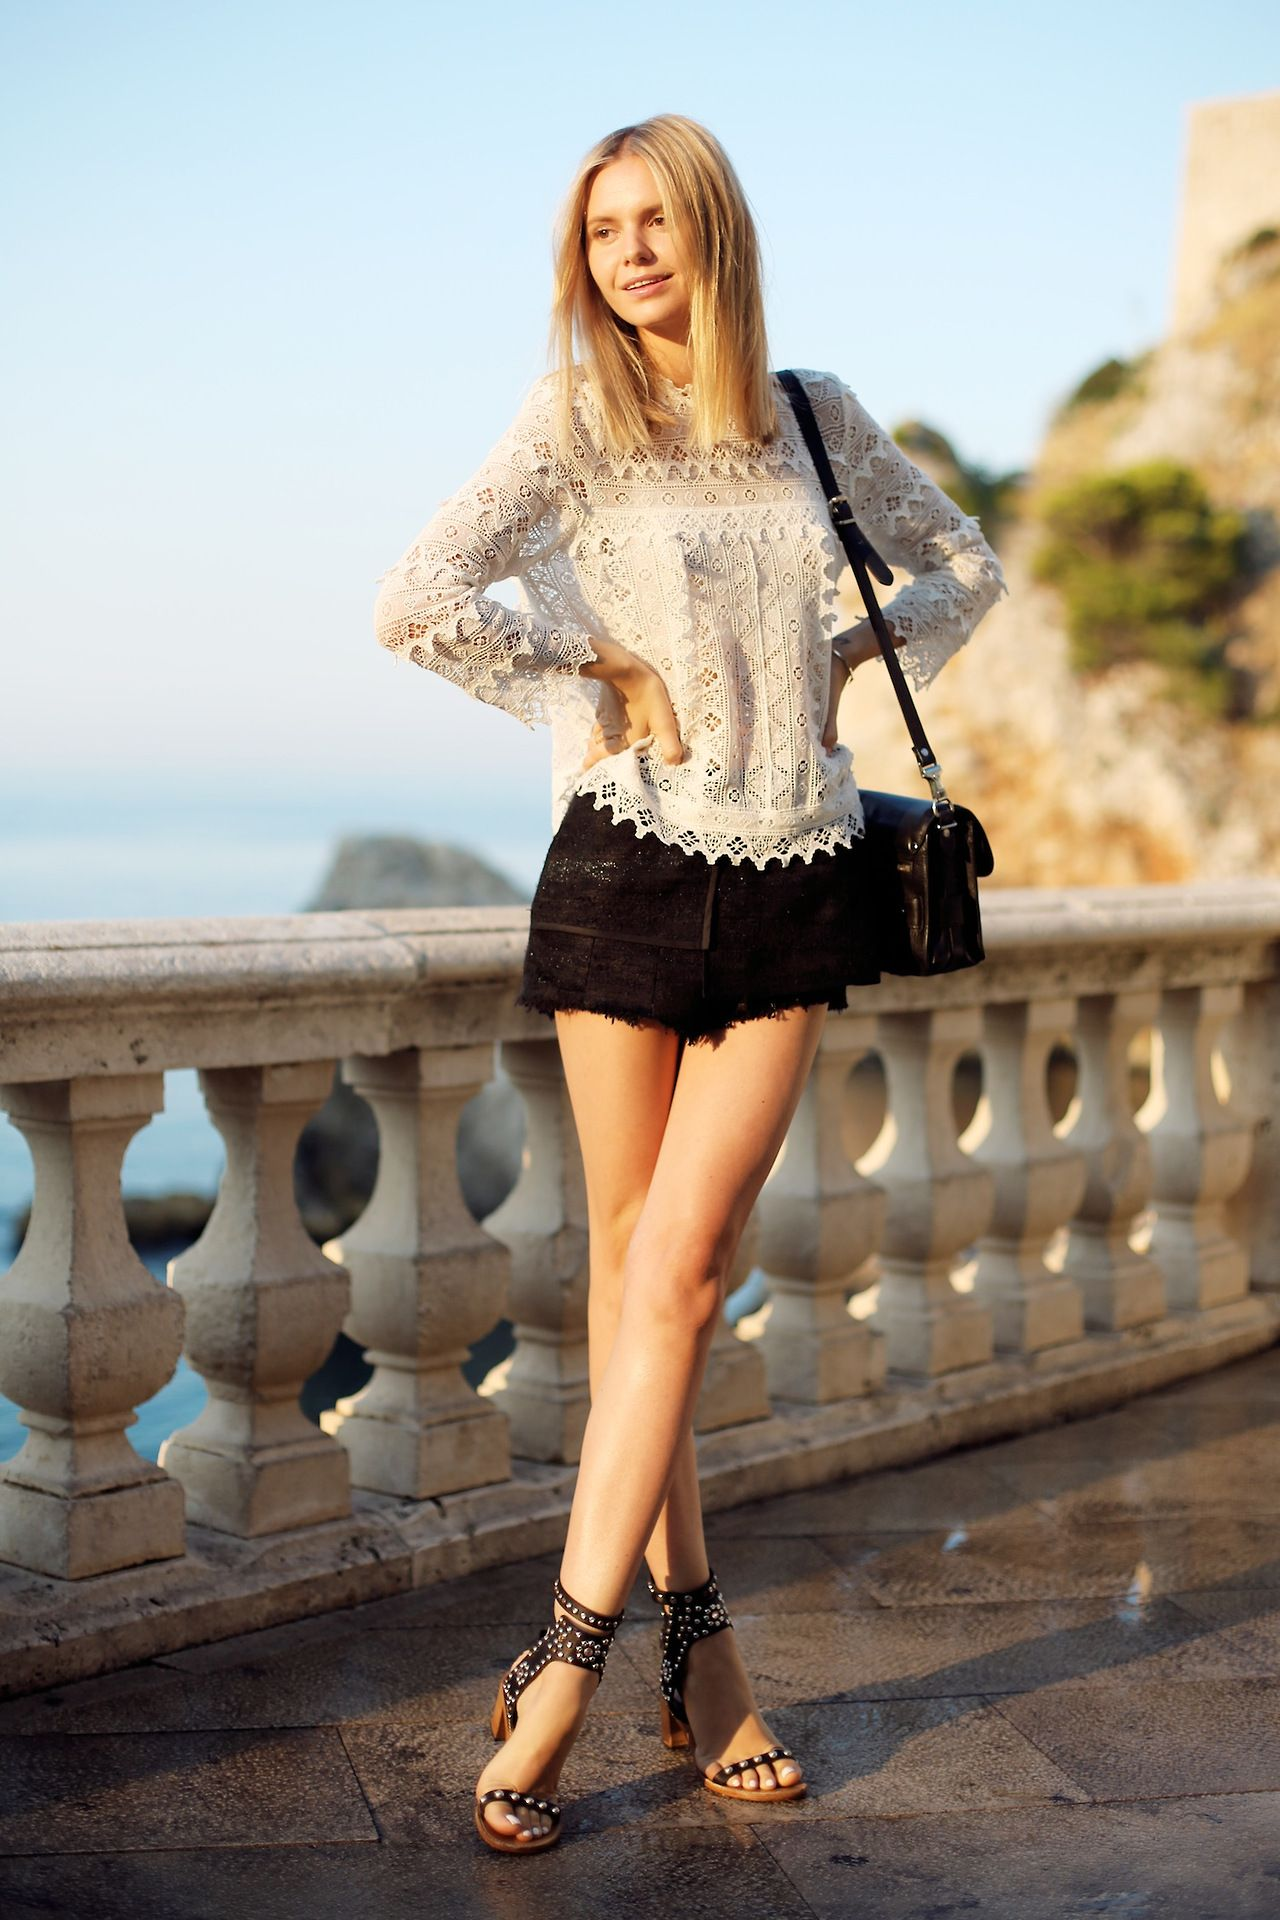 Dolce Vita top, Ellery shorts from For Artists Only, Isabel Marant sandals, Proenza Schouler bag, Gorjana cuff, Jennifer Zeuner necklace and rings. (image:  tuulavintage)